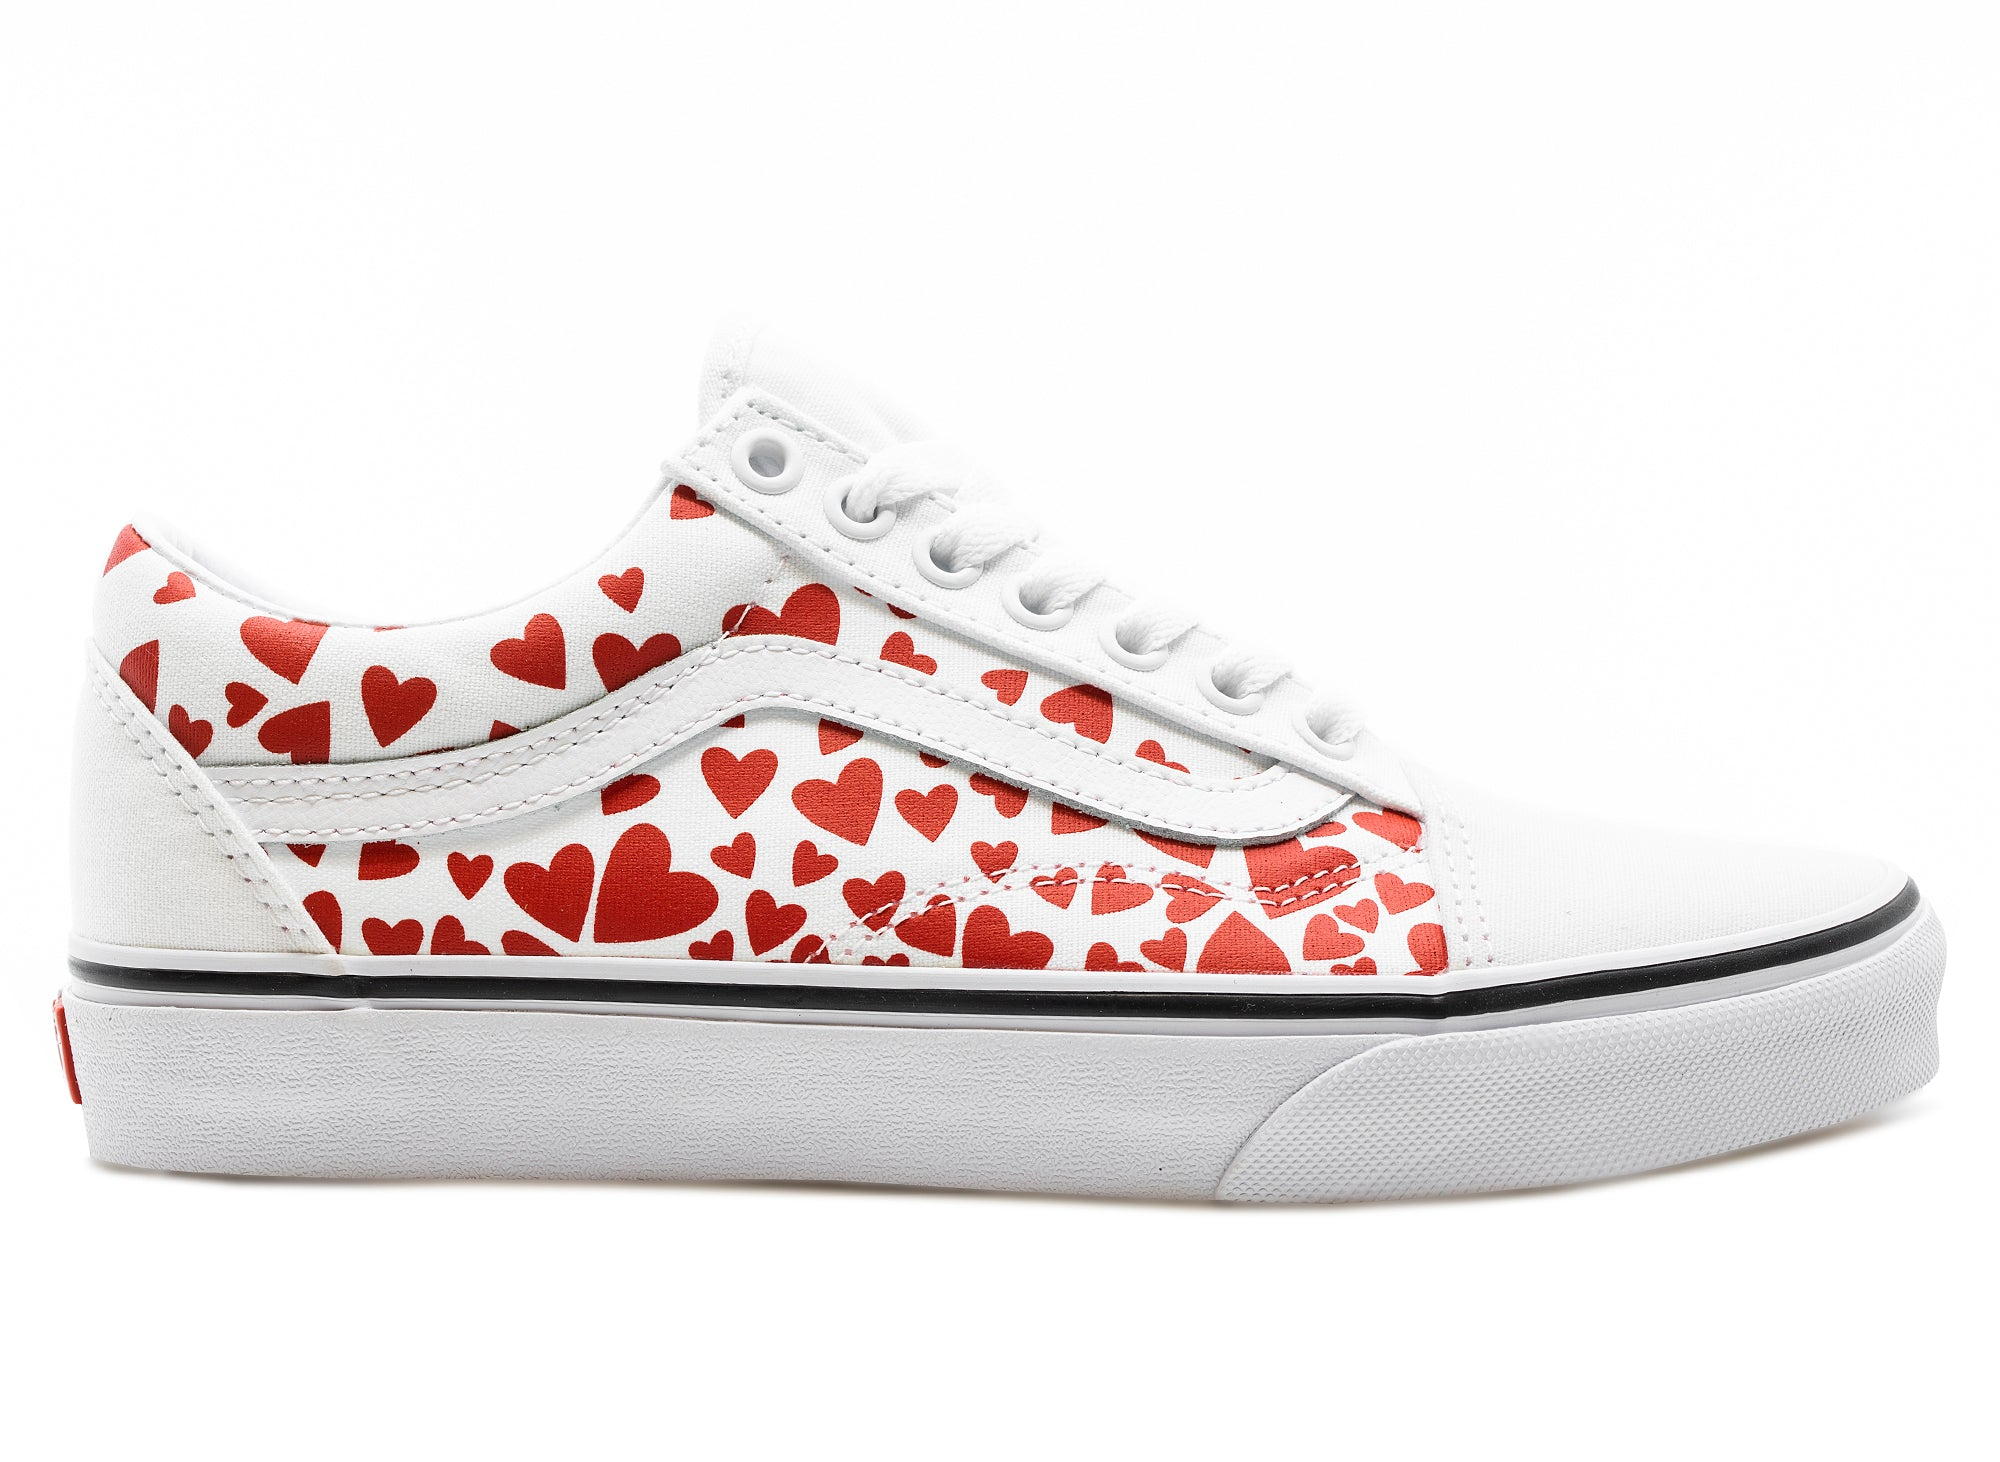 Women's Vans Old Skool 'Valentine's Hearts' xld